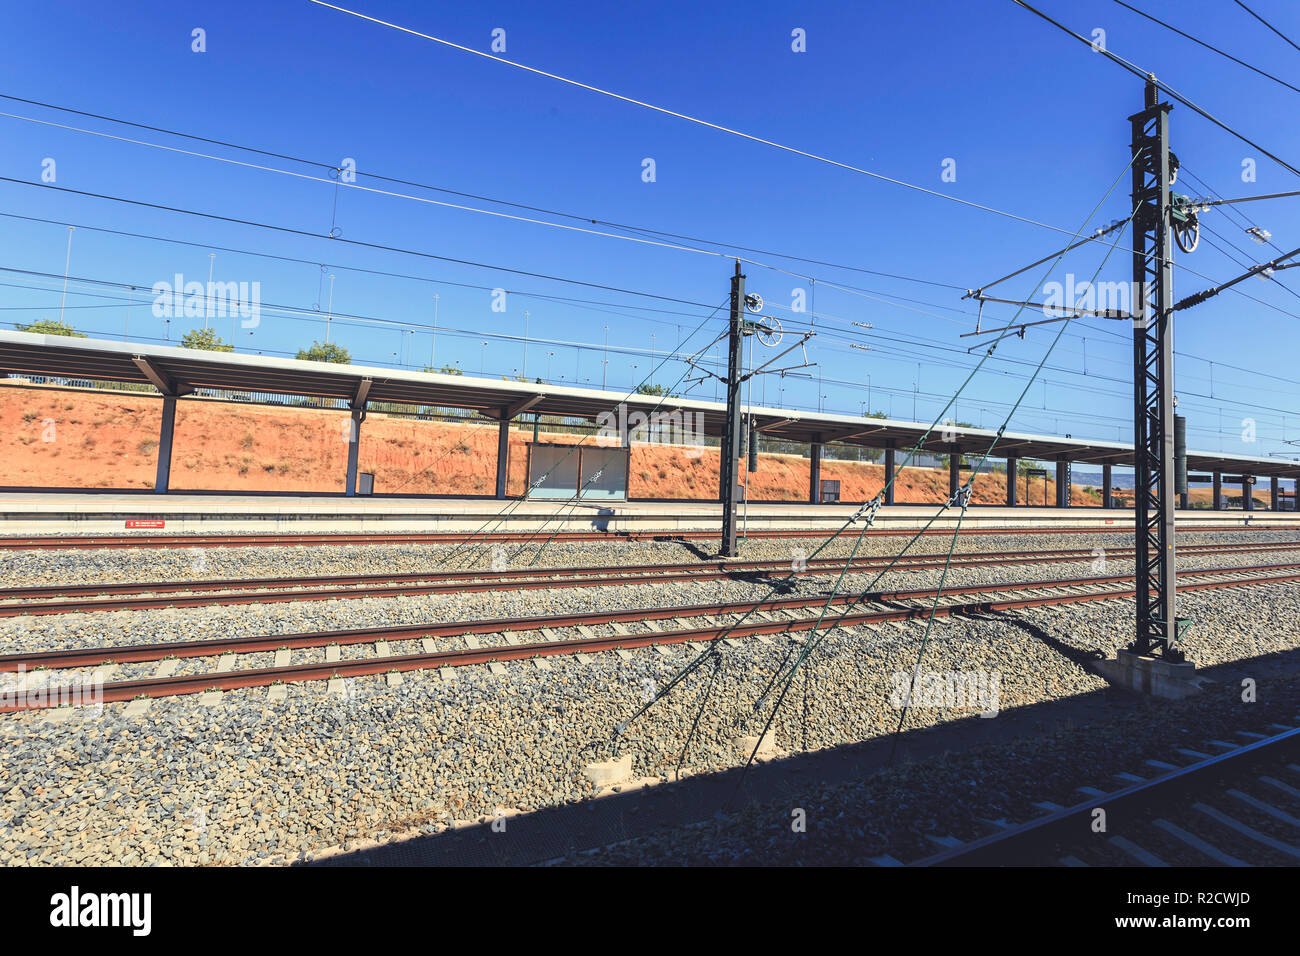 Train tracks with overhead catenary and electric lines in a blue sky background, at Cuenca station Stock Photo